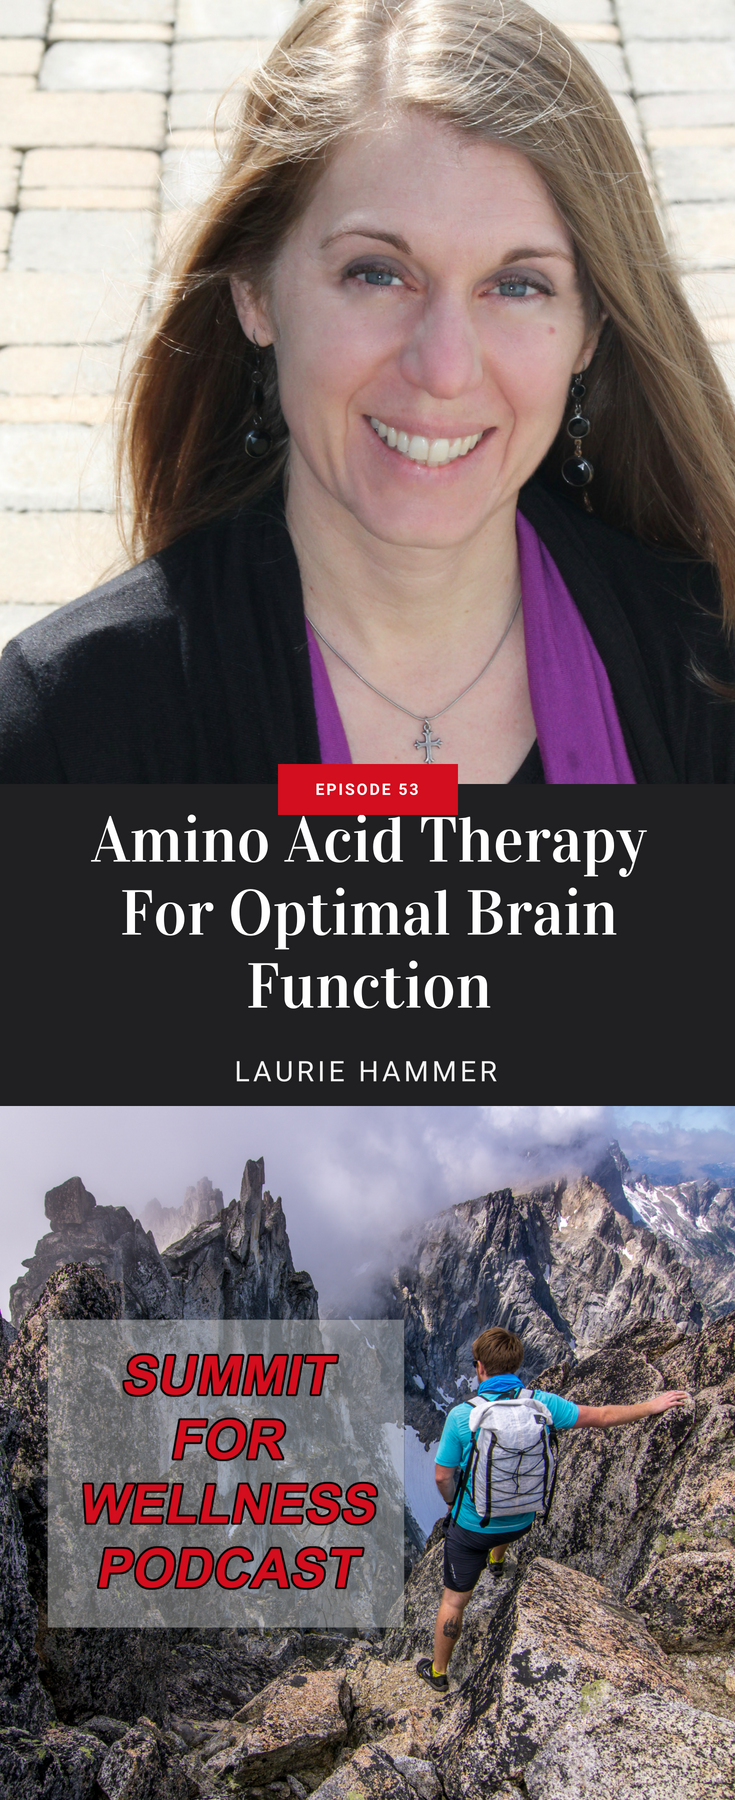 Amino Acid Therapy is used to discover deficiencies in the right amino acids that are needed to build neurotransmitters.